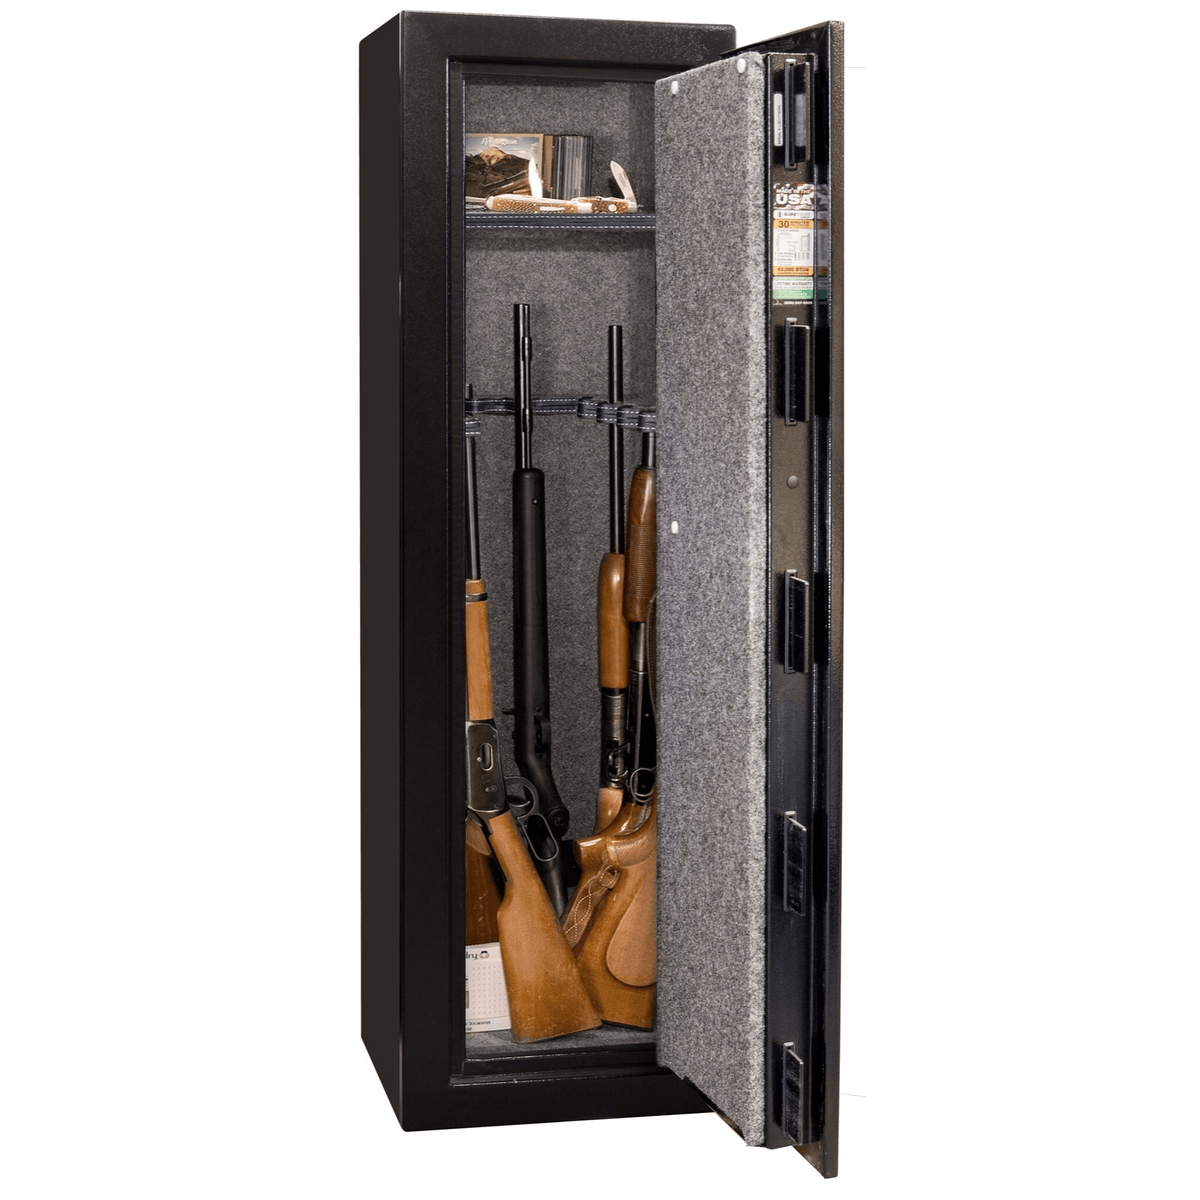 "Centurion Series | Level 1 Security | 30 Minute Fire Protection | 12 | Dimensions: 59.5""(H) x 18.25""(W) x 18""(D) 